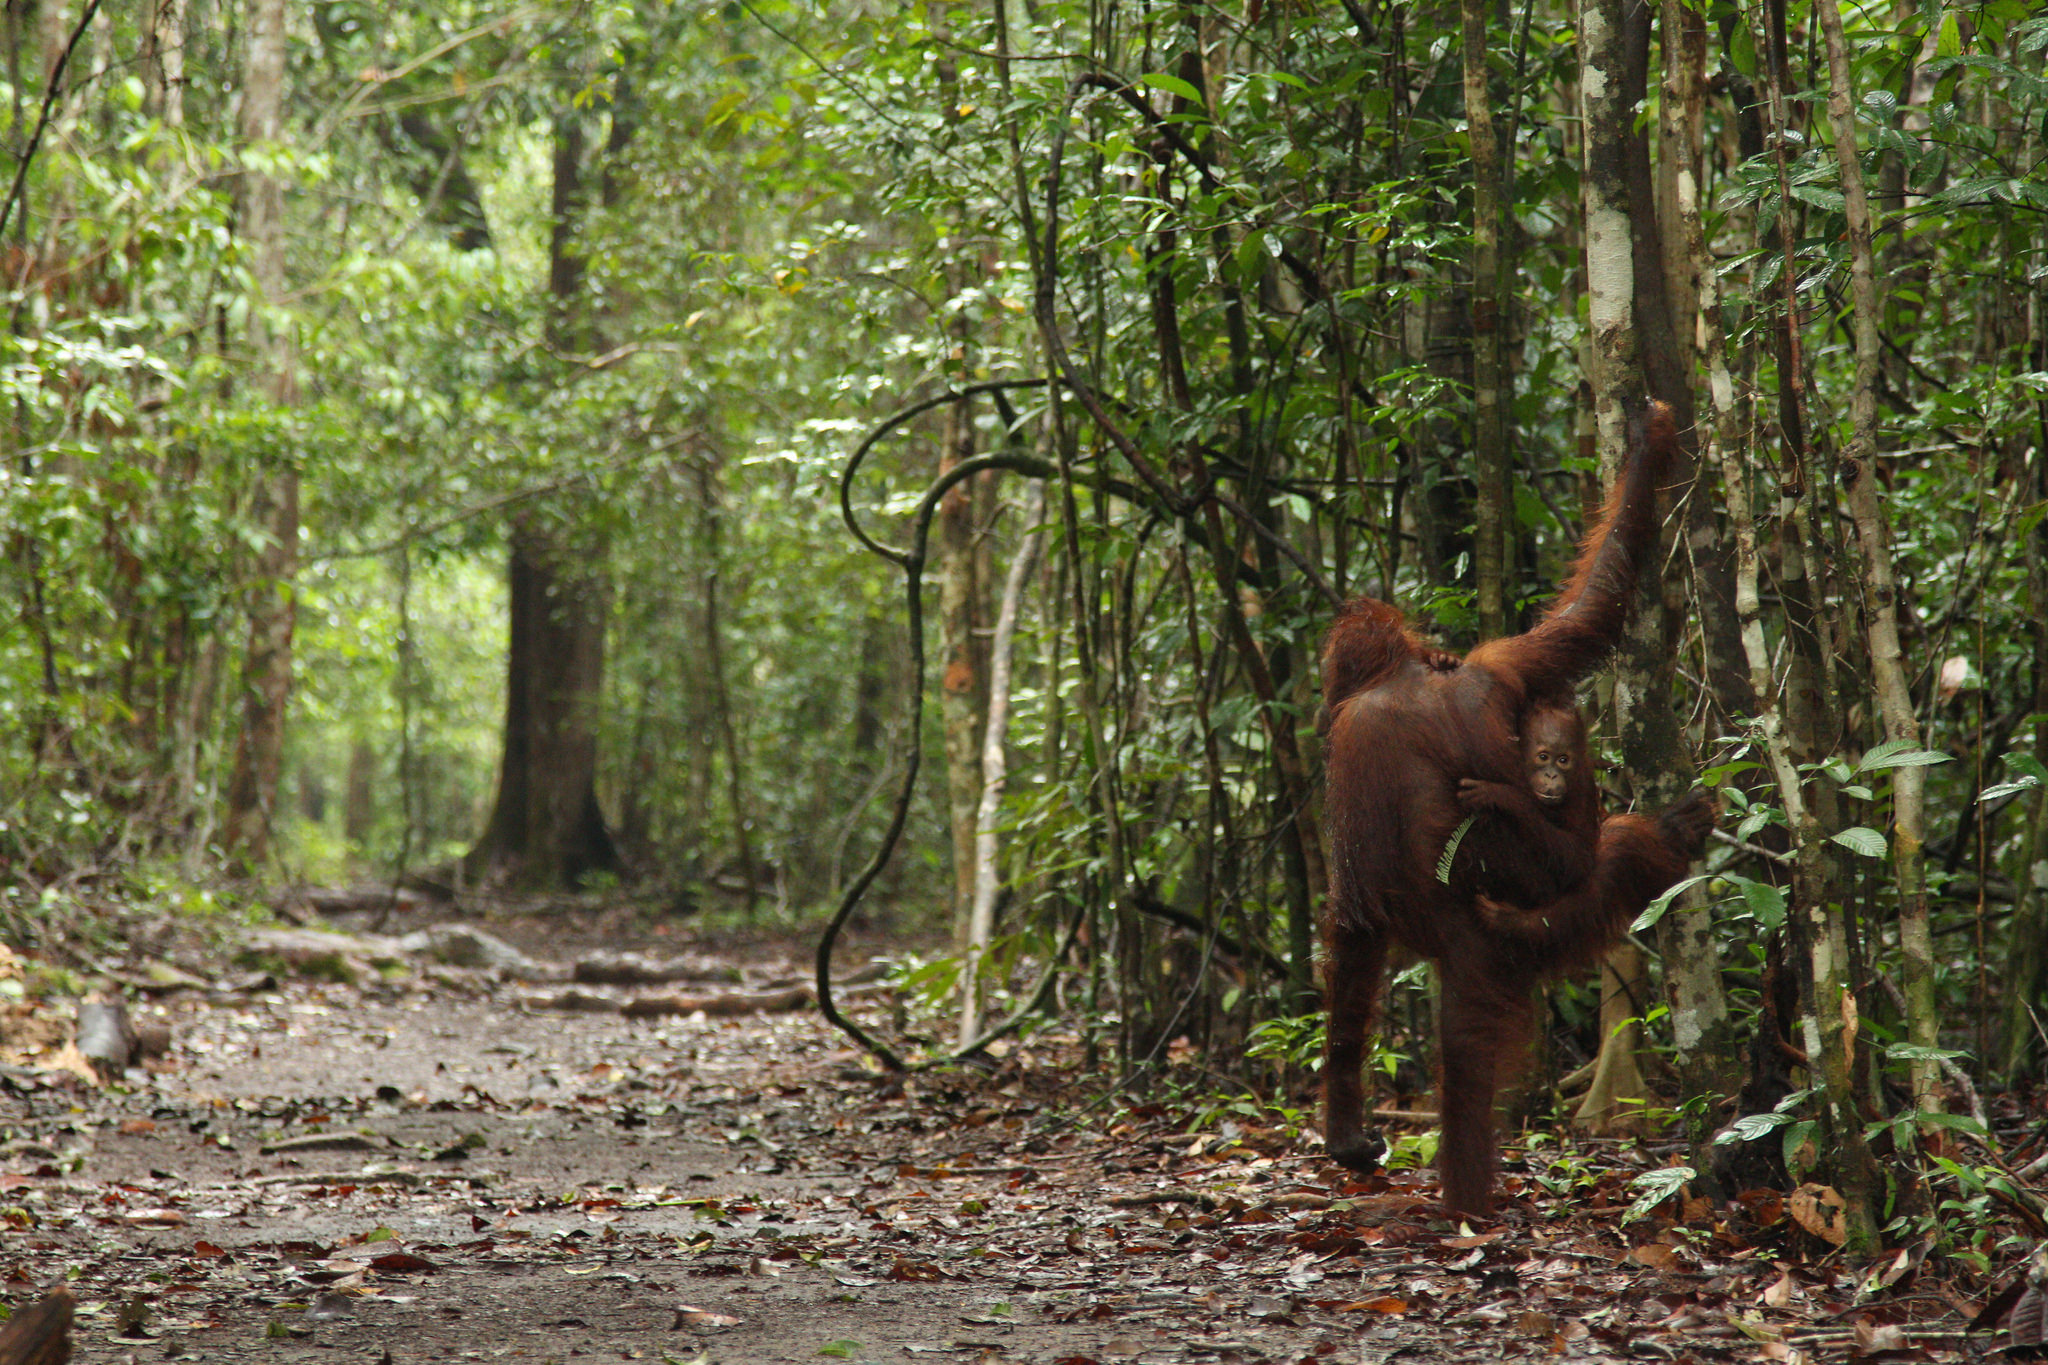 Orangutans at Camp Leakey, Central Kalimantan, Indonesia